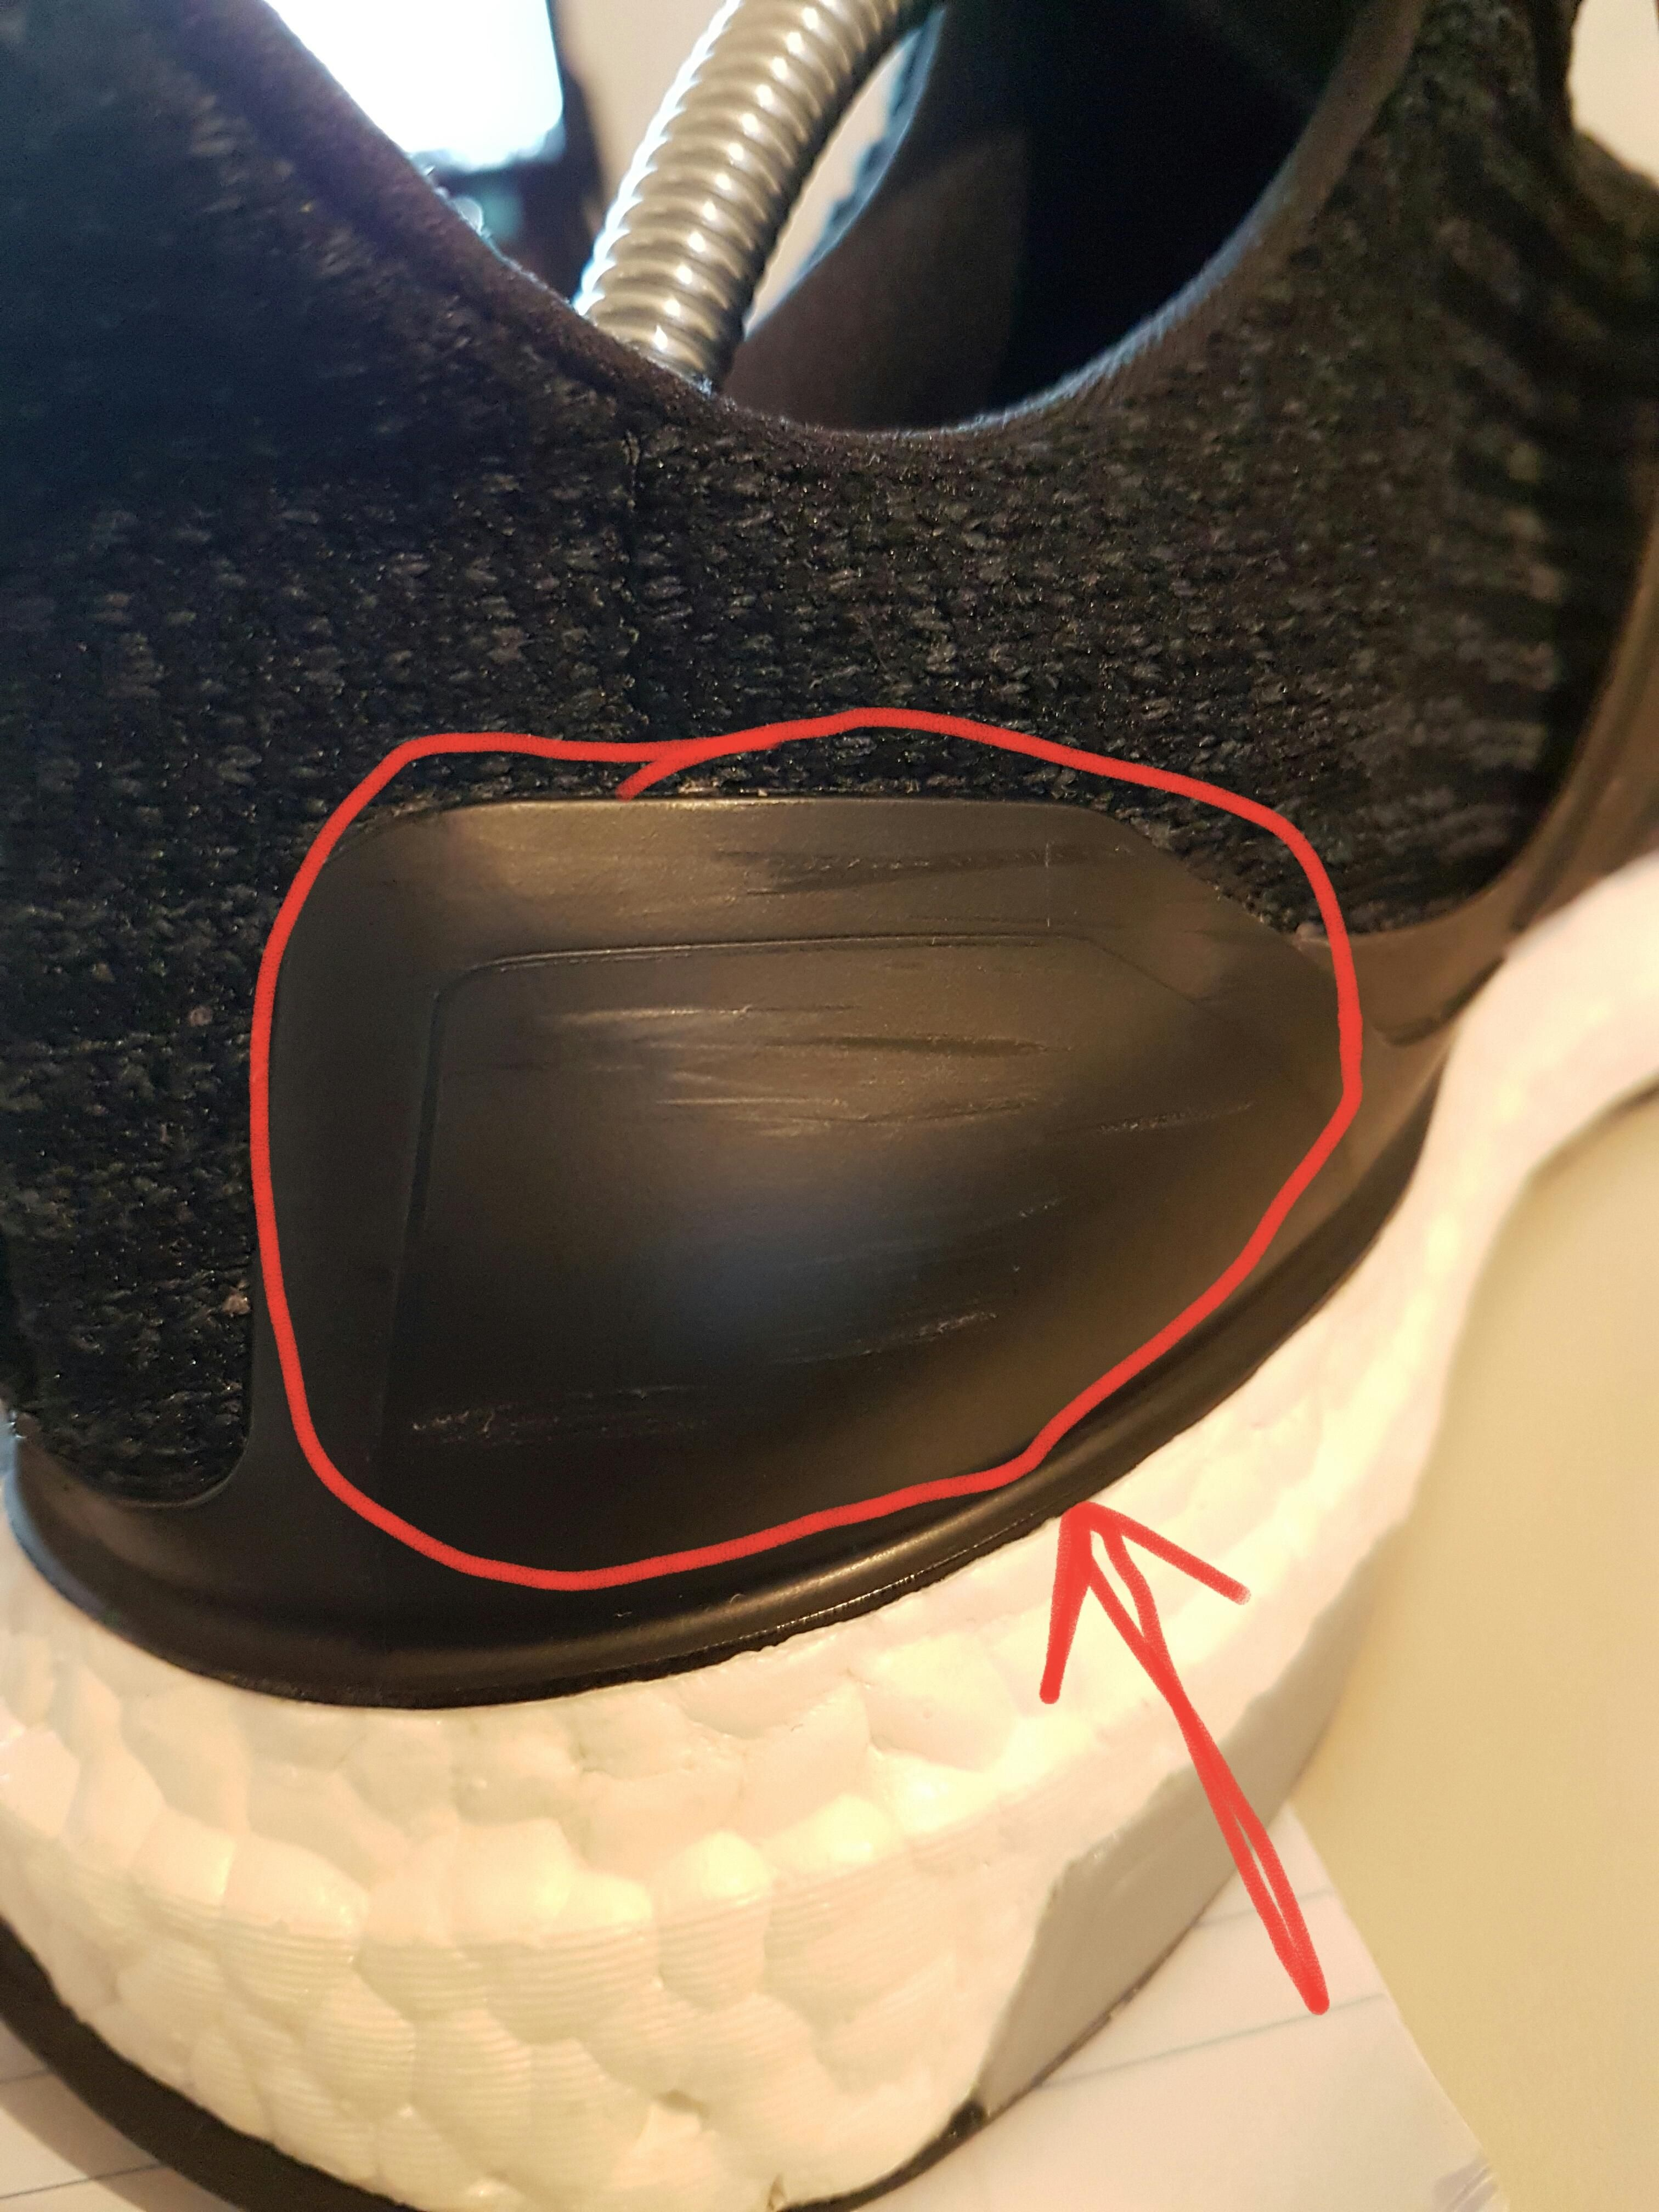 How to remove these scuffs on the ultra boost 'heel cage